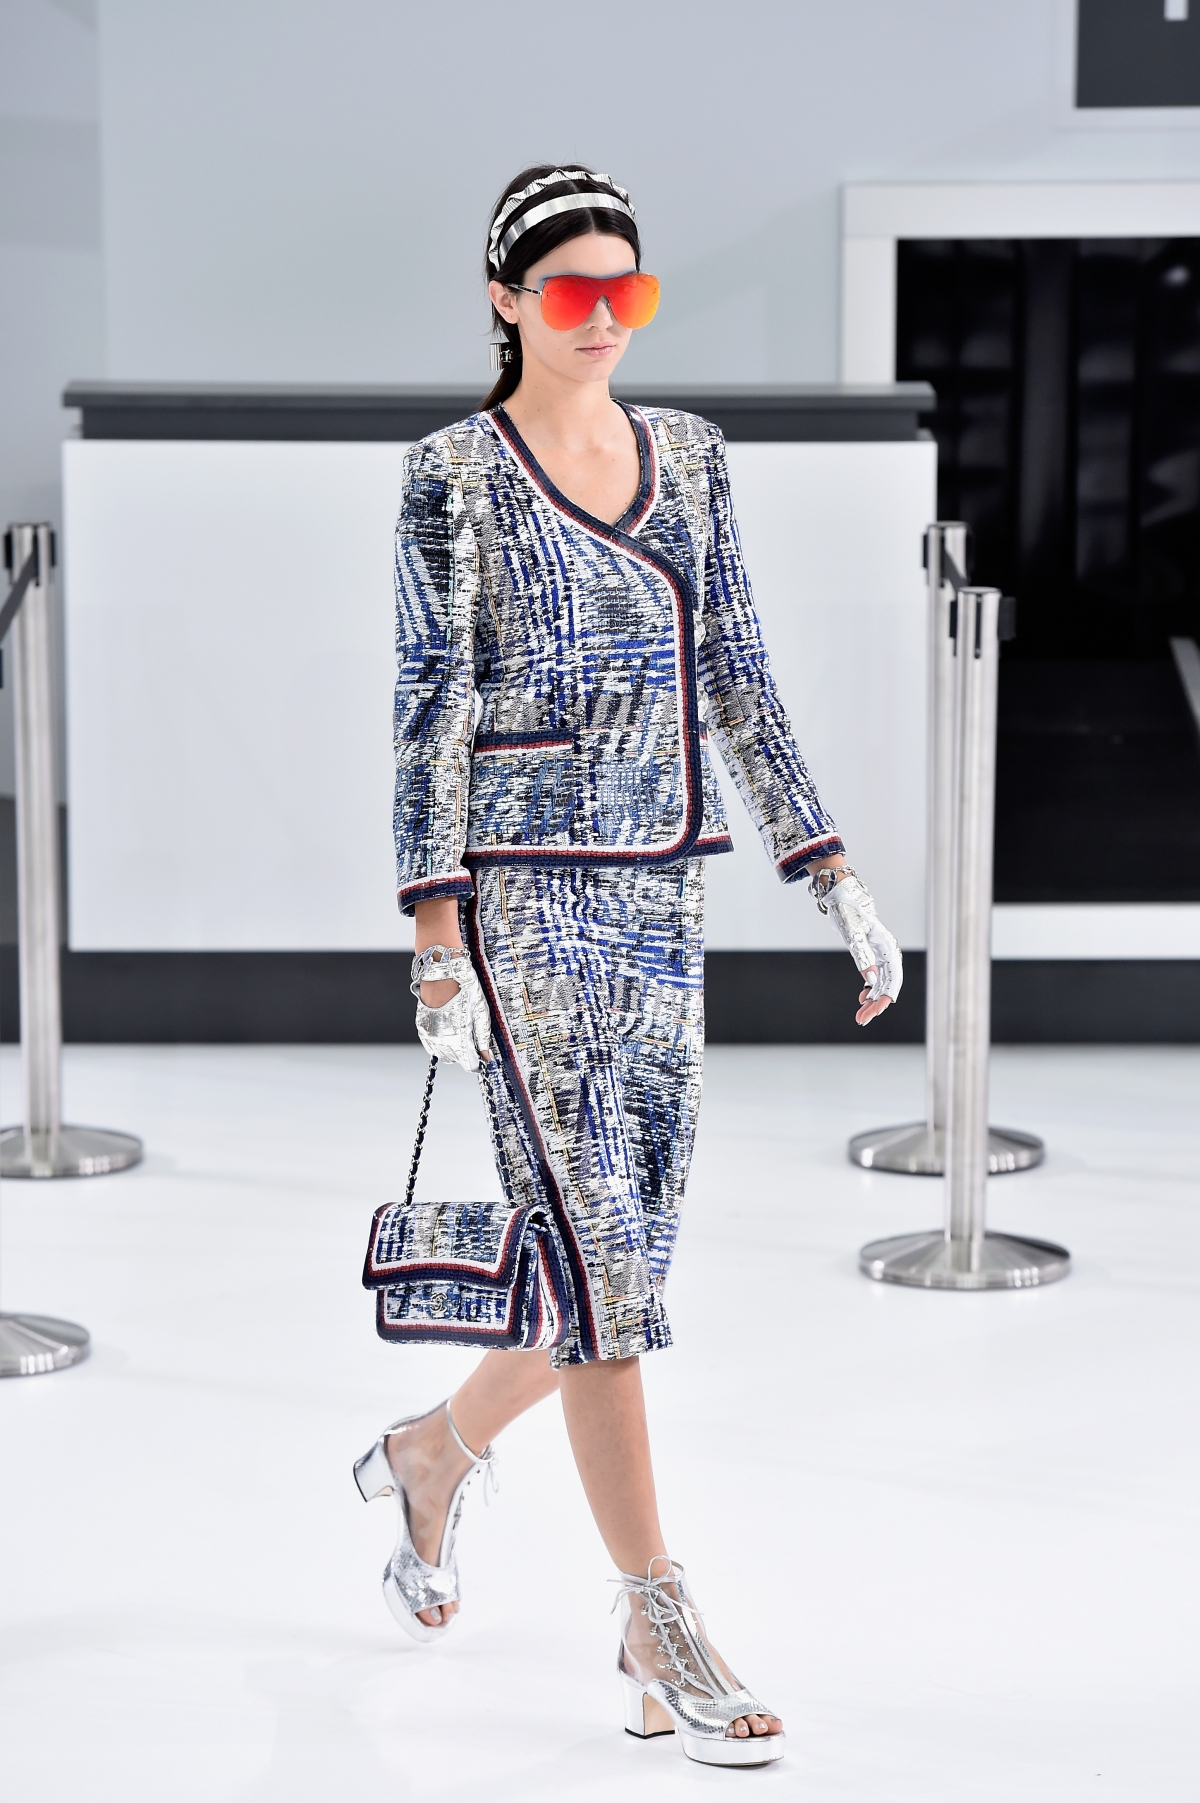 Kendall Jenner models for Chanel SS16